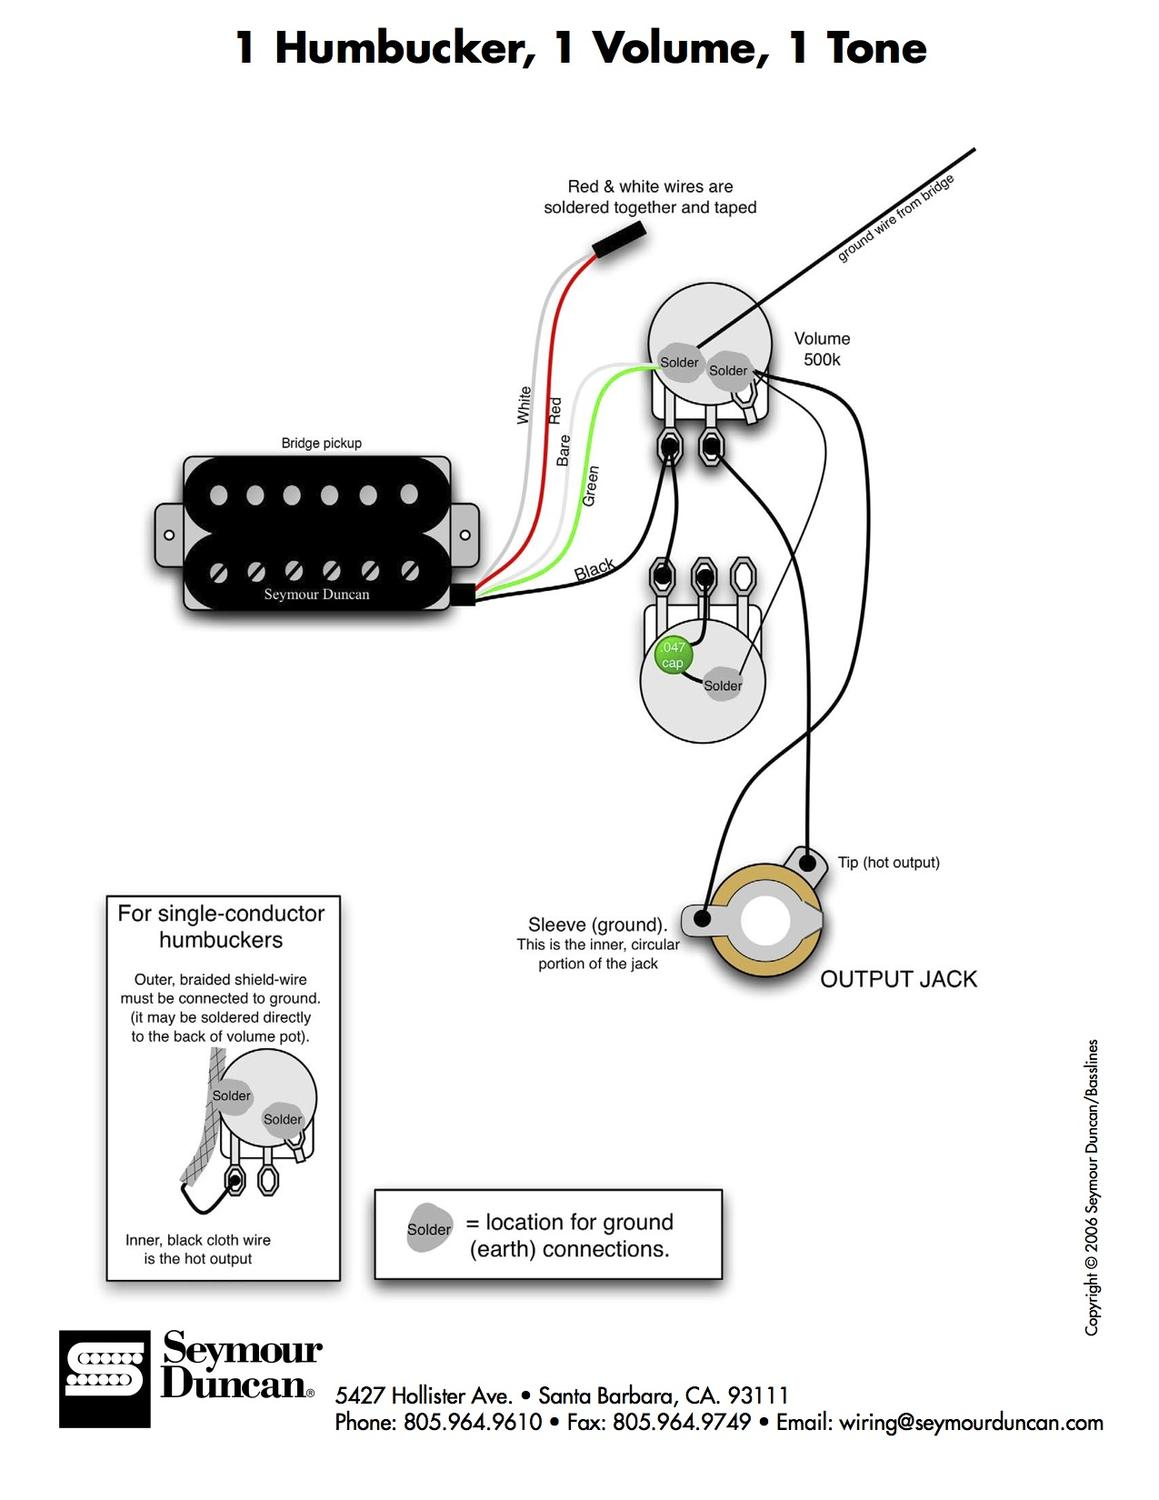 Emg Hss Wiring Diagram - Wiring Diagram Collection